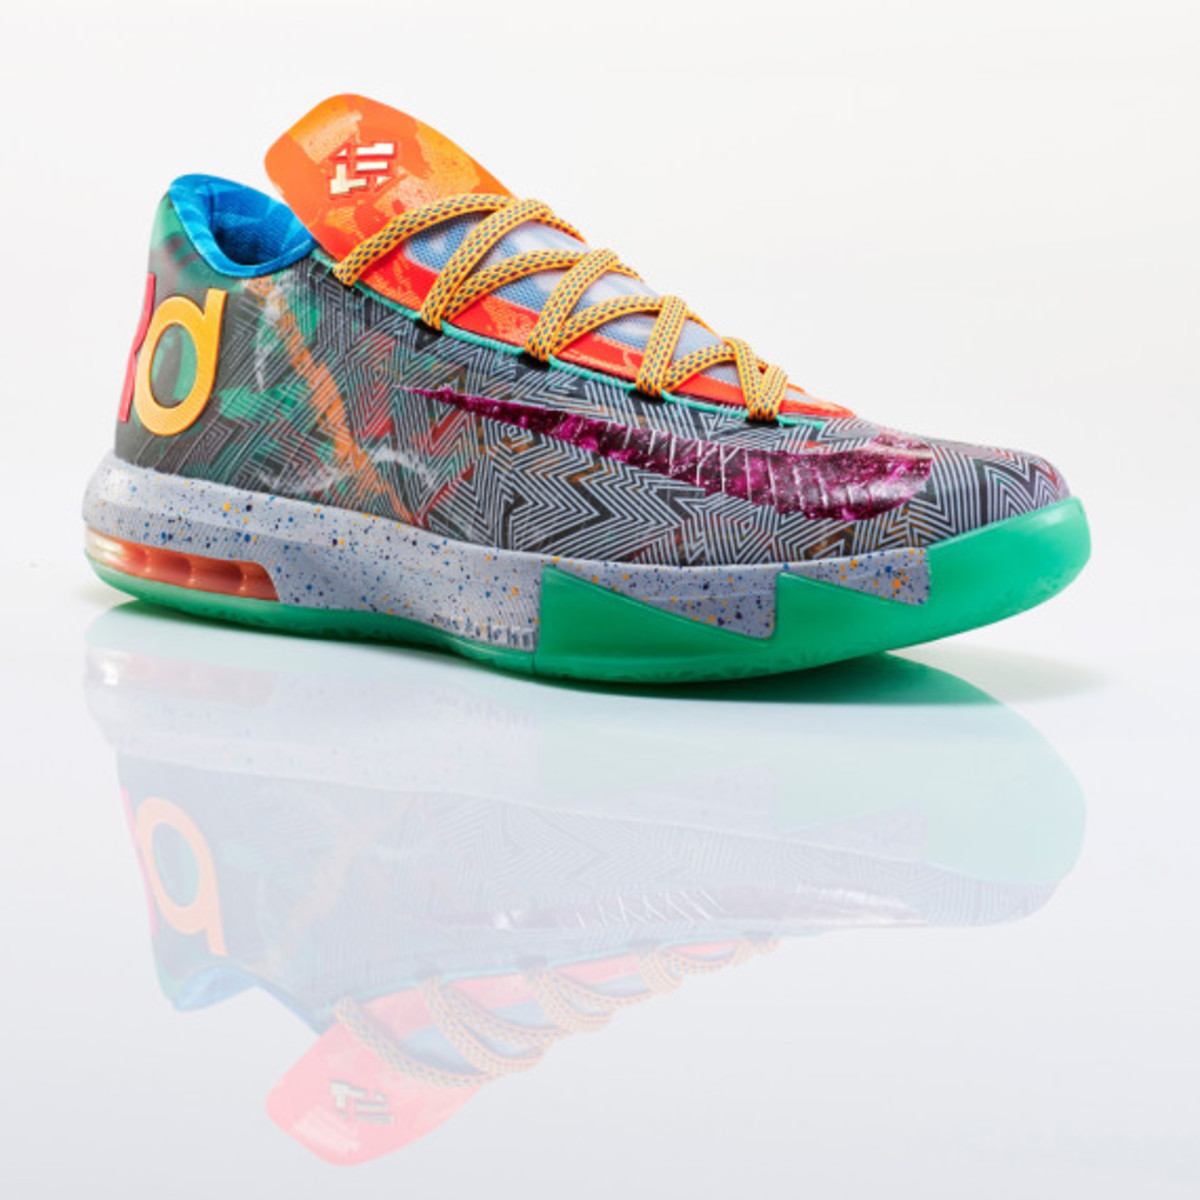 nike-what-the-kd-6-j